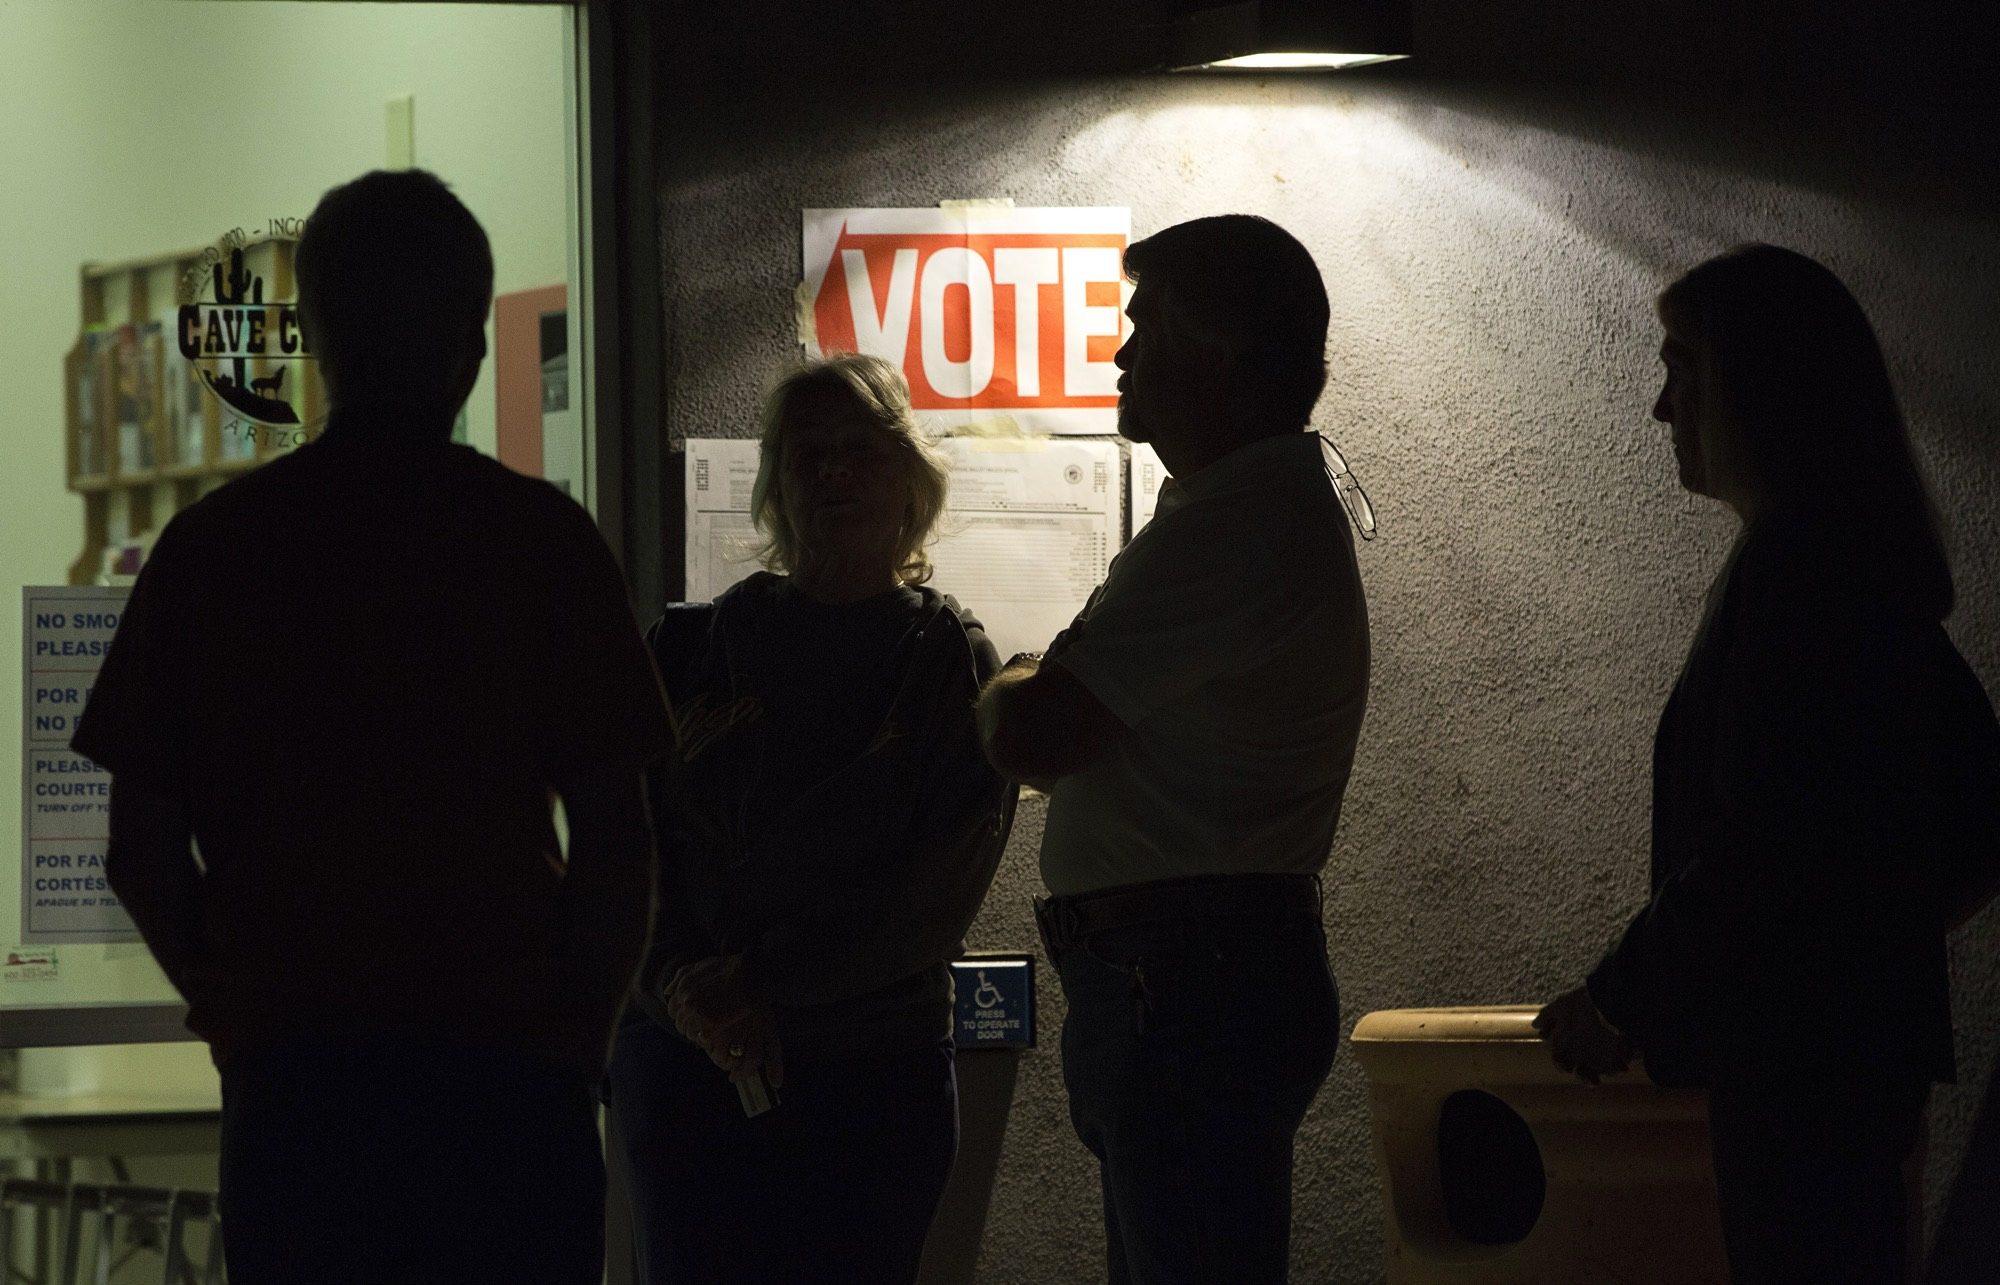 Voters stand in line to vote in the U.S. presidential primary election in Cave Creek, AZ March 22, 2016. [Reuters]